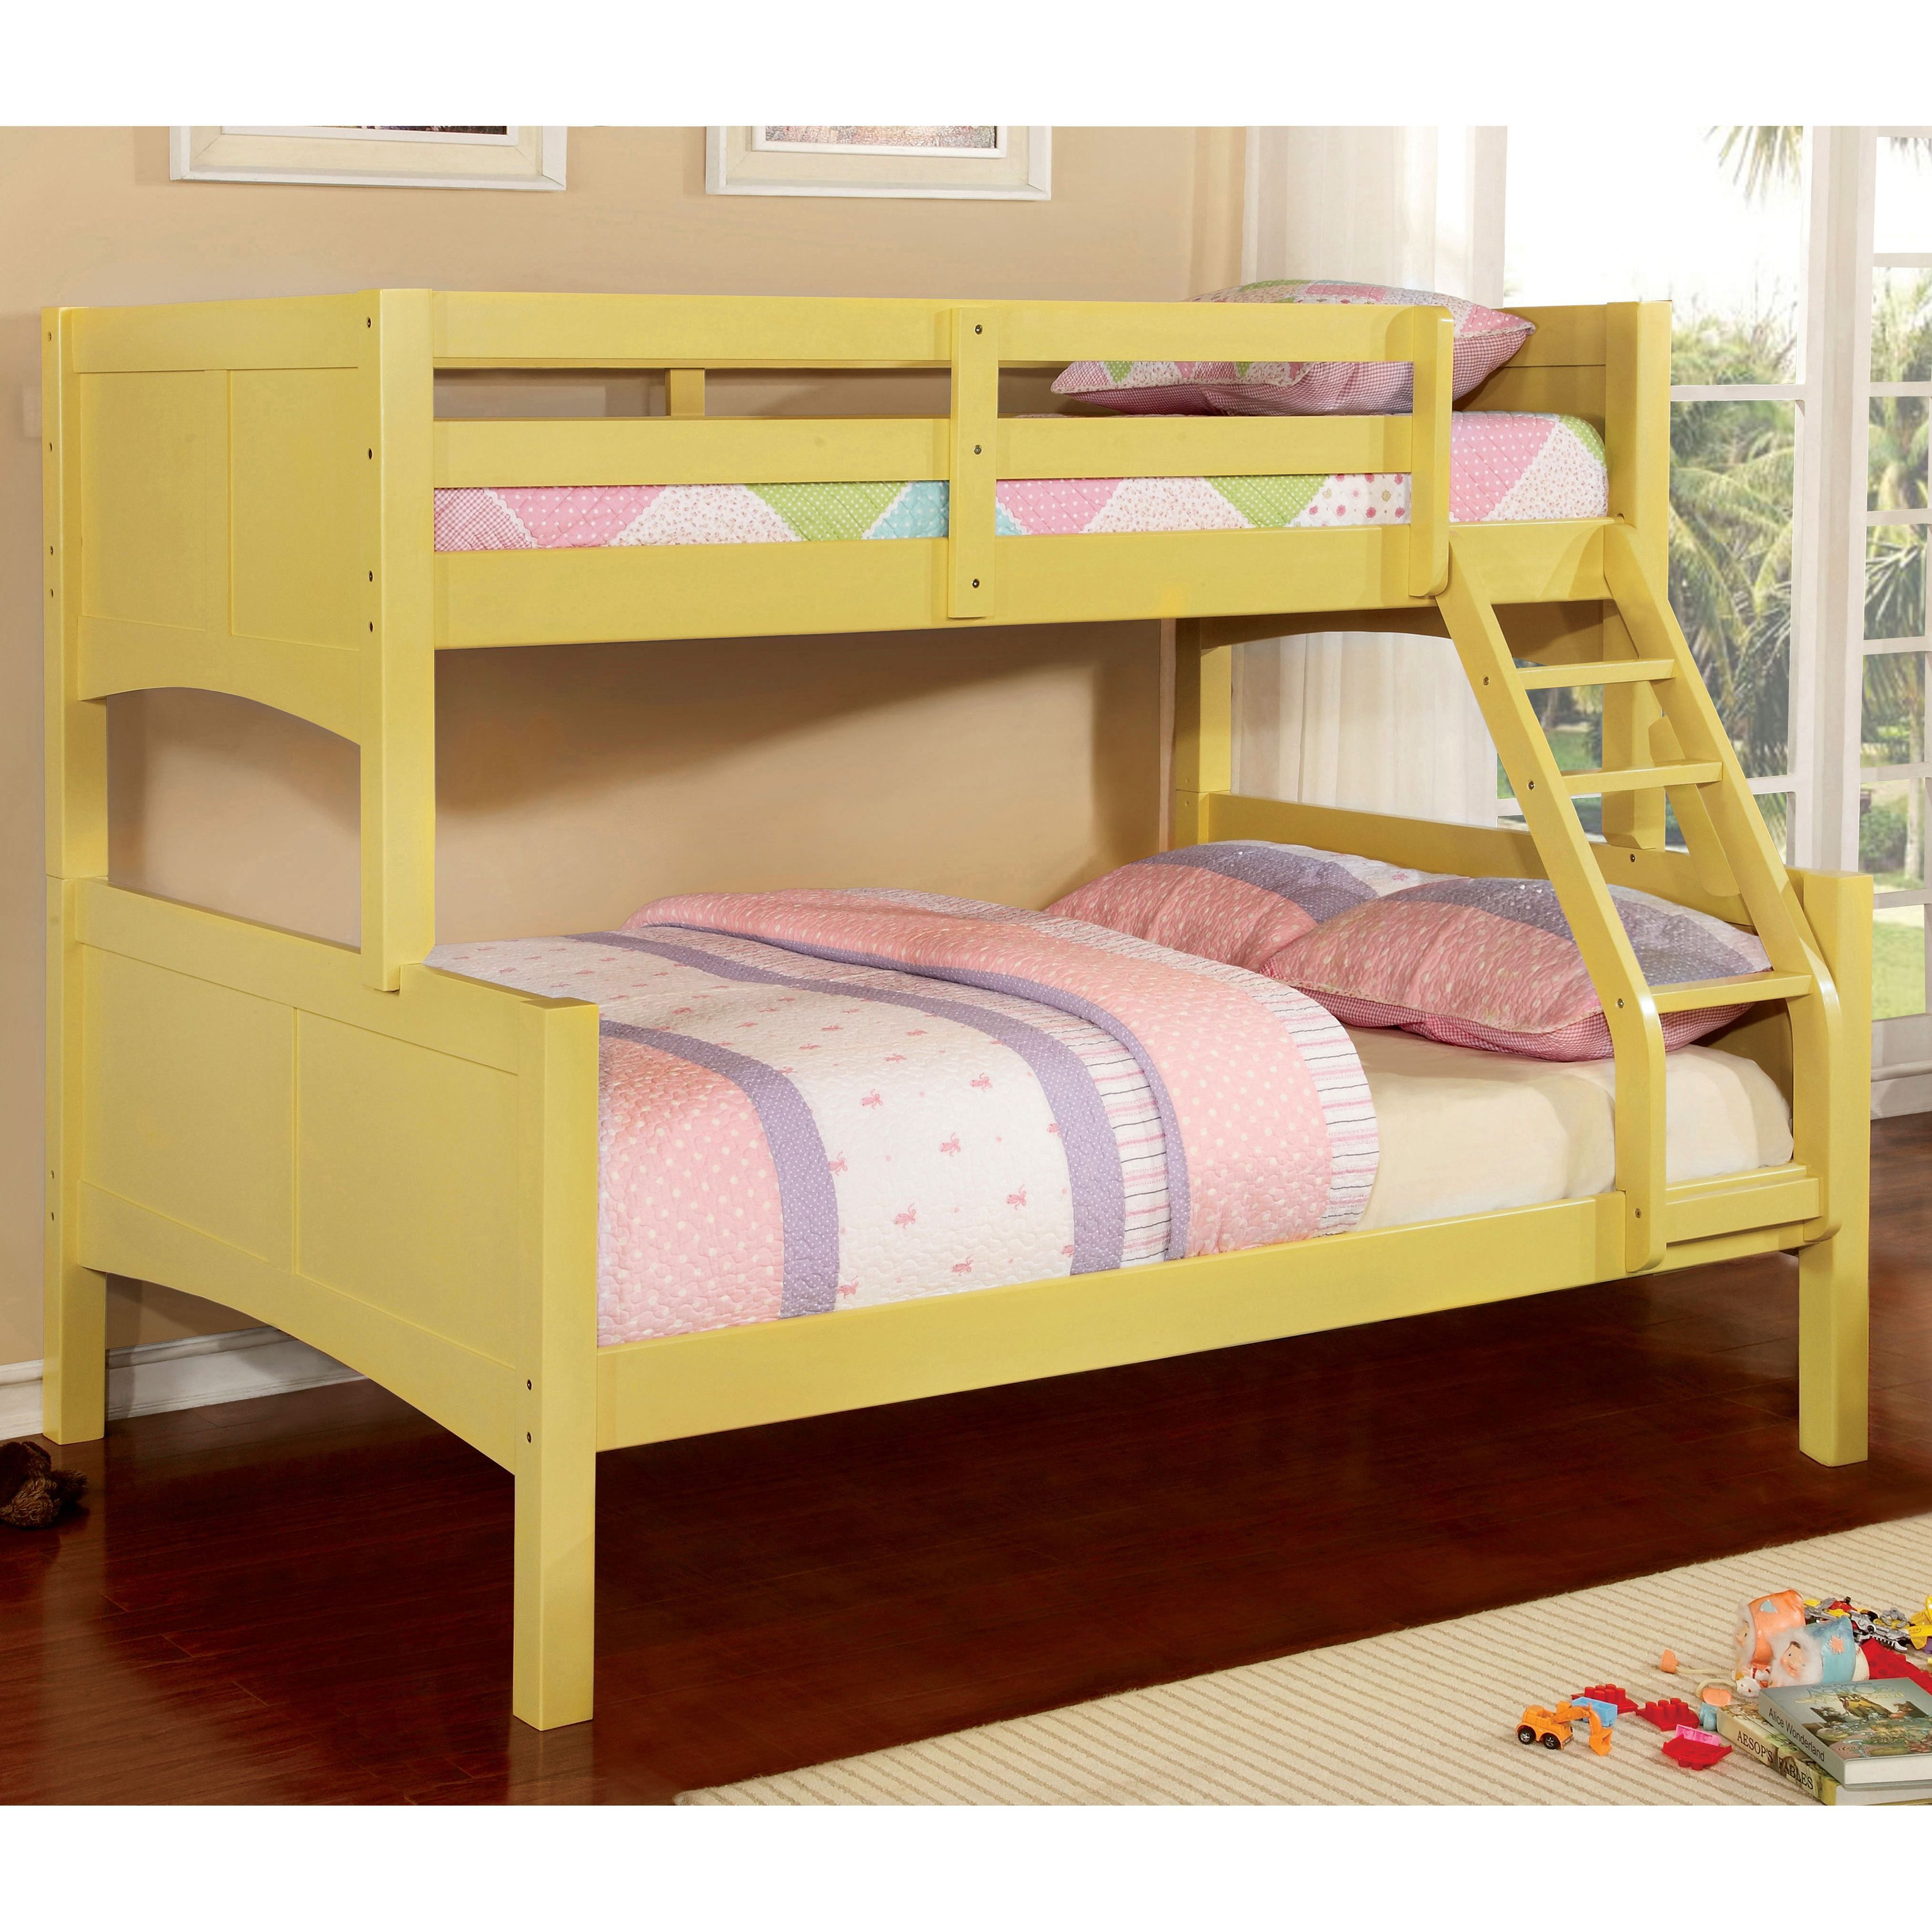 Girls loft bed with stairs  Furniture of America Colorpop TwinoverFull Modern Bunk Bed Twin